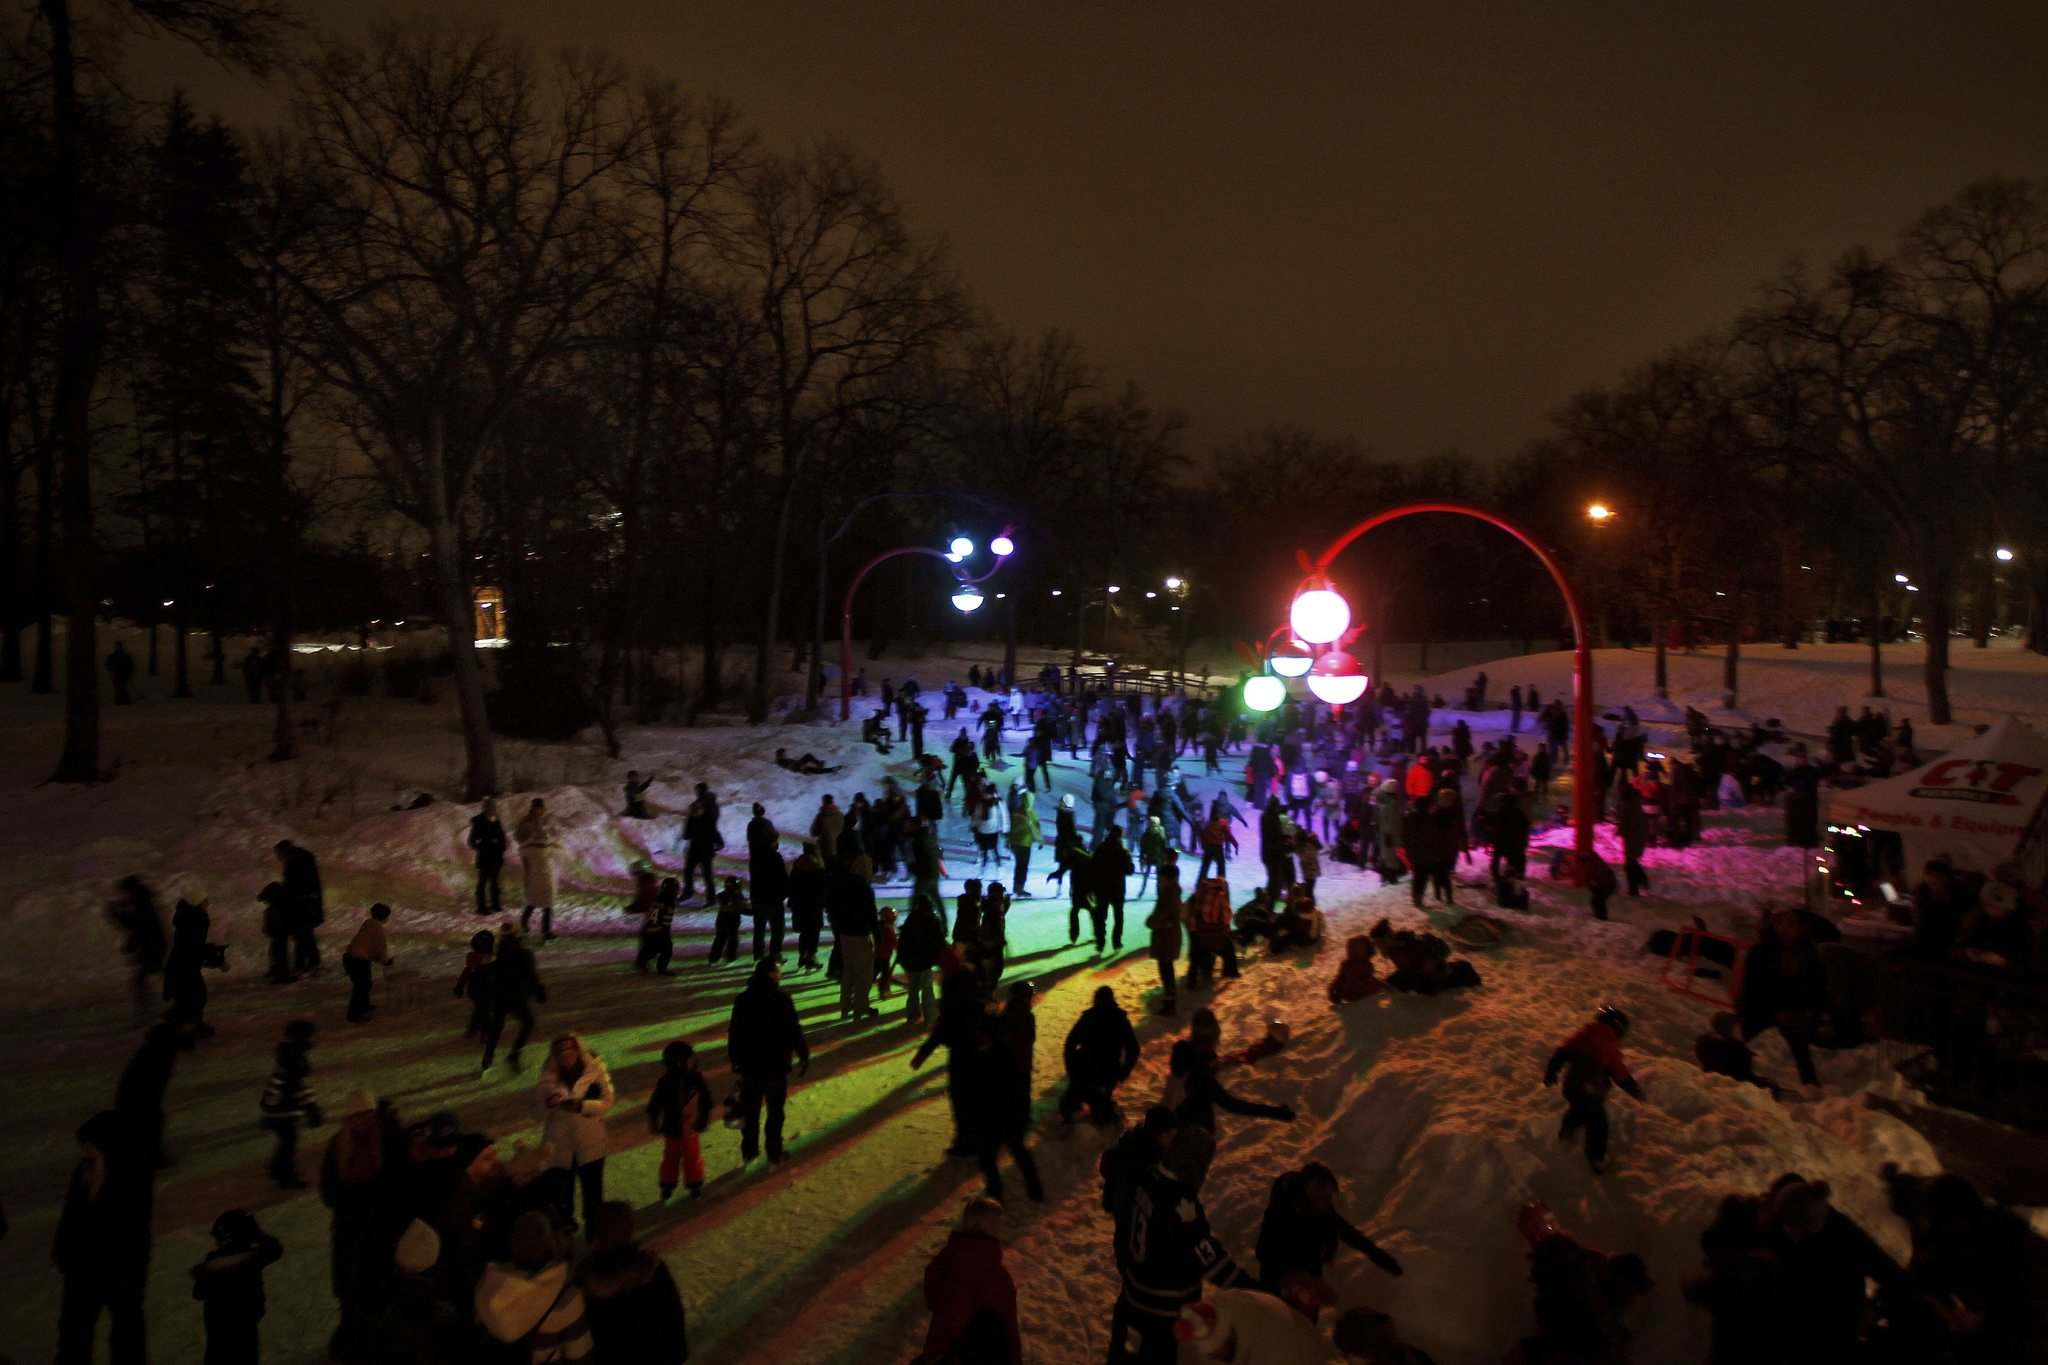 PHIL HOSSACK / WINNIPEG FREE PRESS FILES</p><p>Takashi Iwasaki and Nadi Design&rsquo;s interactive project Bokeh drew a huge crowd during its official opening &mdash; a skating party &mdash; at the duck pond in Kildonan Park on Jan. 12.</p></p>